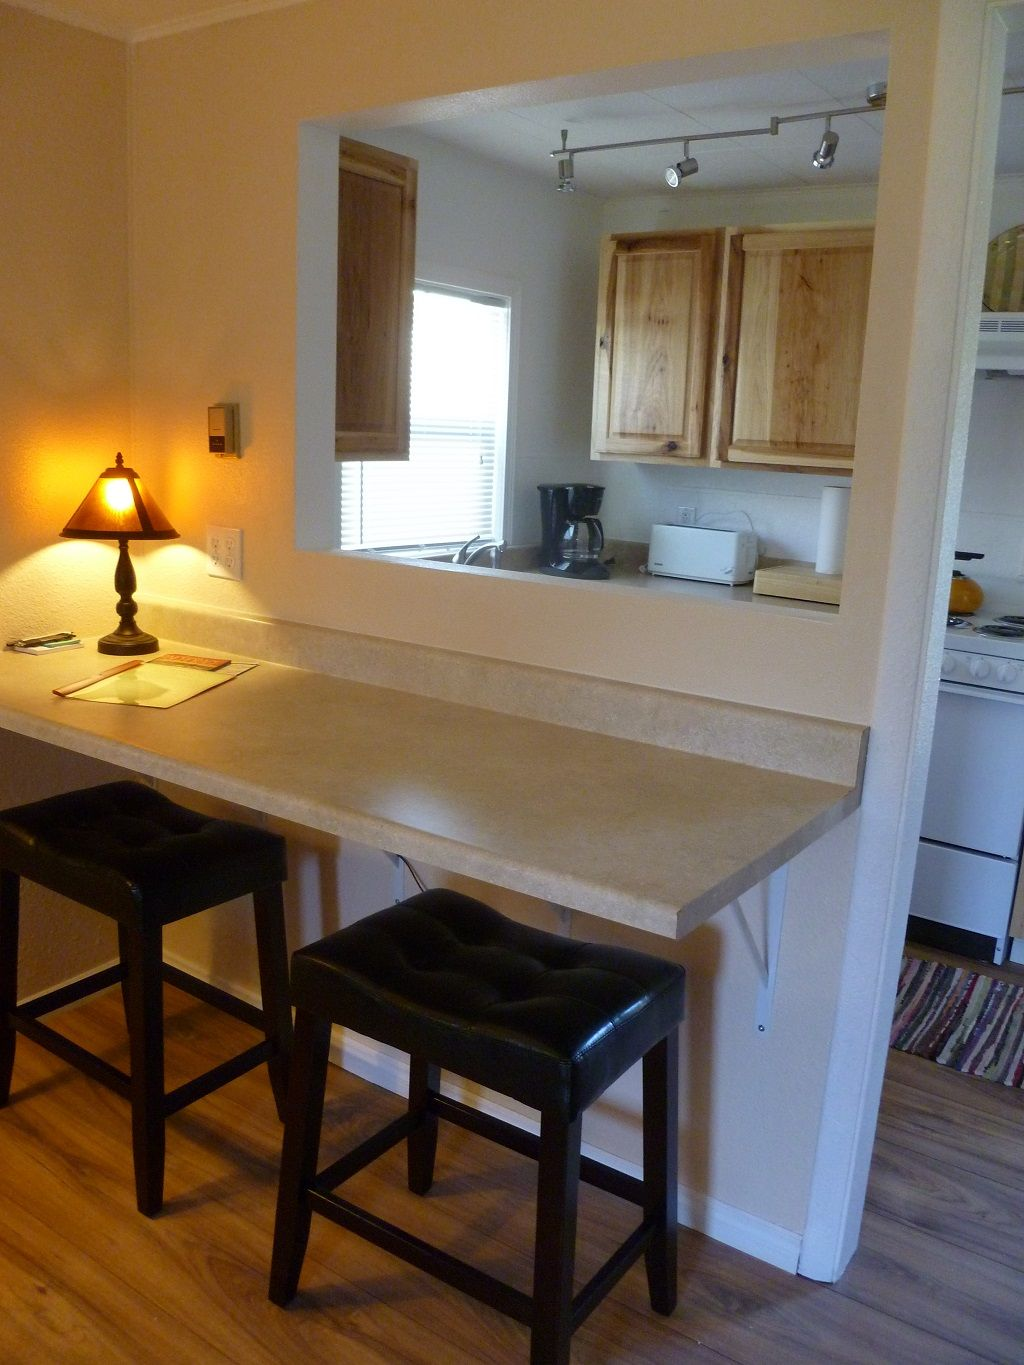 Breakfast bar this needs WAY more updating and way